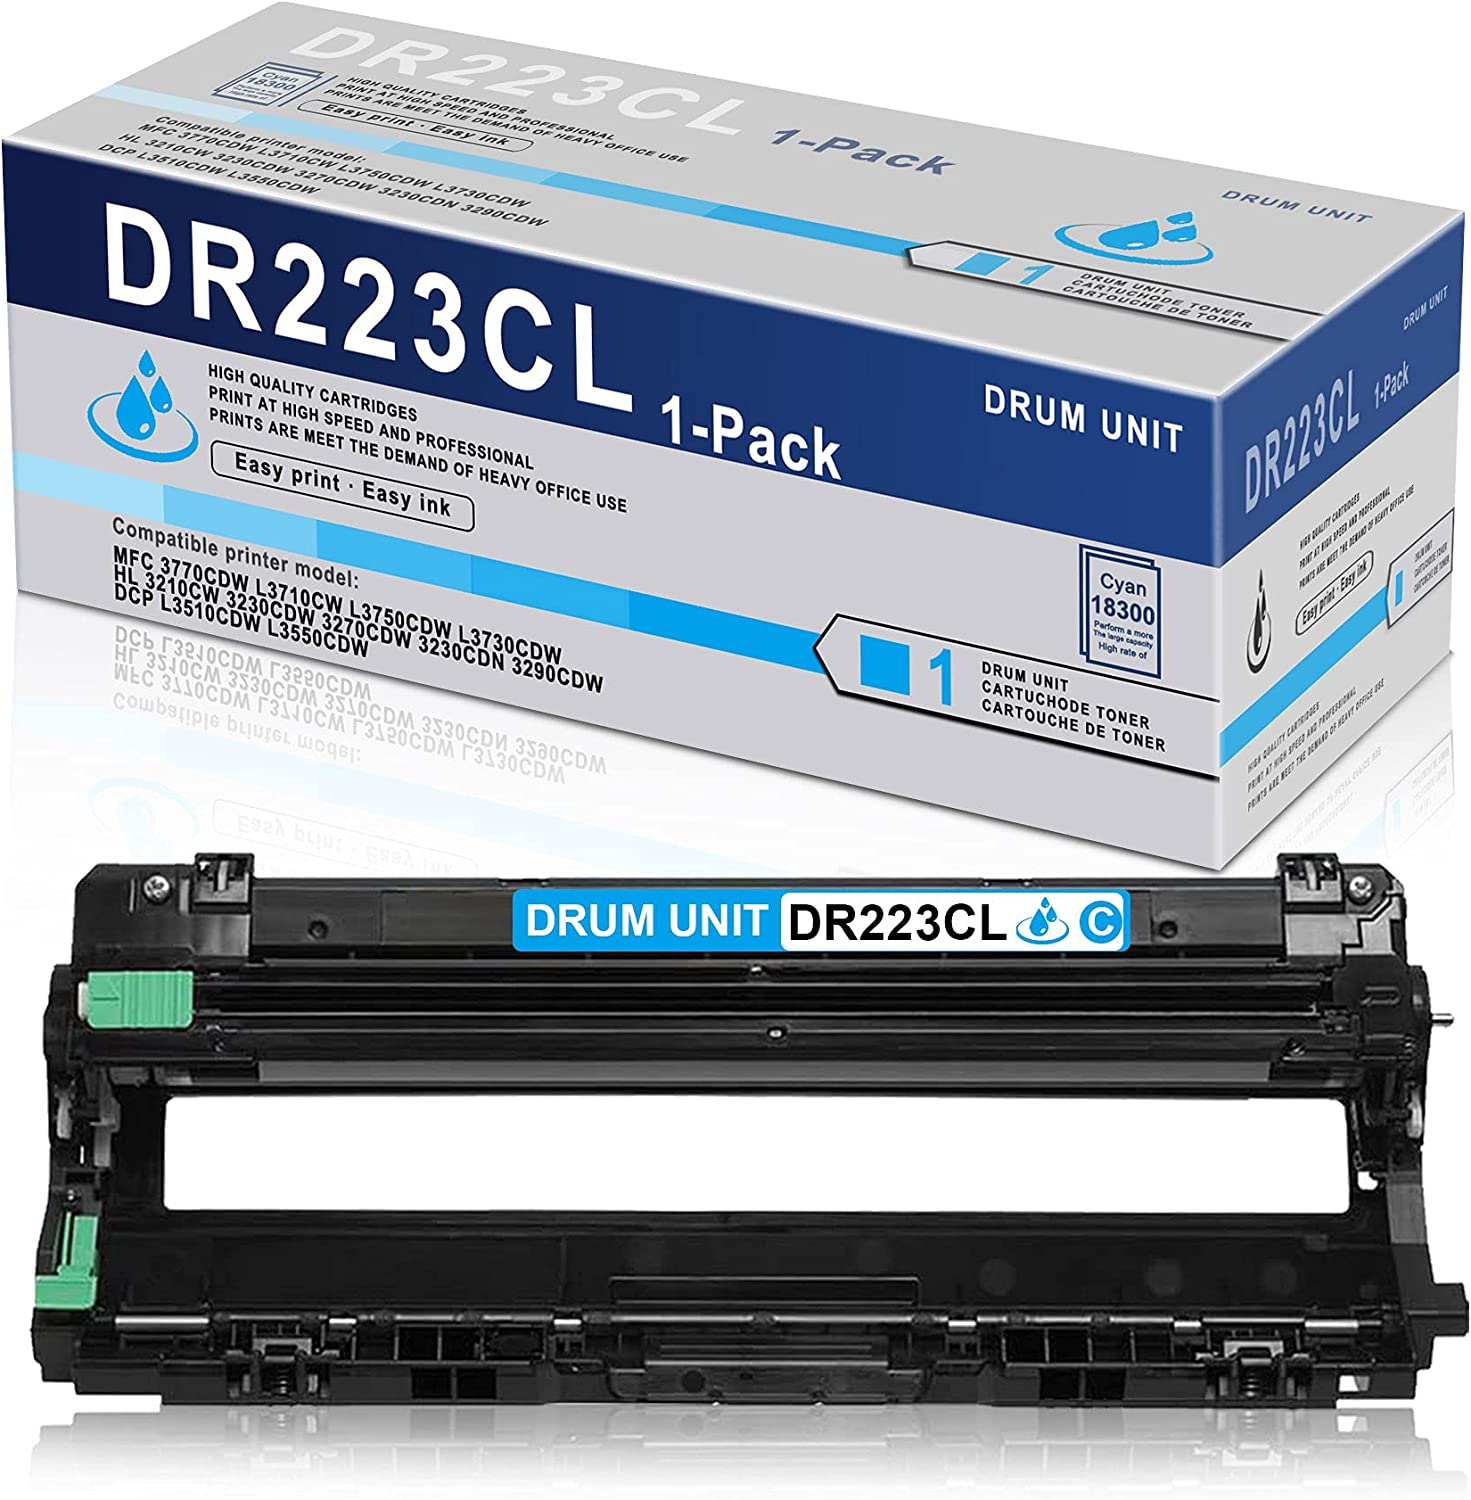 1 Pack Cyan High Yield Drum Unit DR223CL DR-223CL Compatible Replacement for Brother MFC 3770CDW L3710CW L3750CDW L3730CDW HL 3210CW 3230CDW 3270CDW 3230CDN 3290CDW DCP L3510CDW L3550CDW Printer